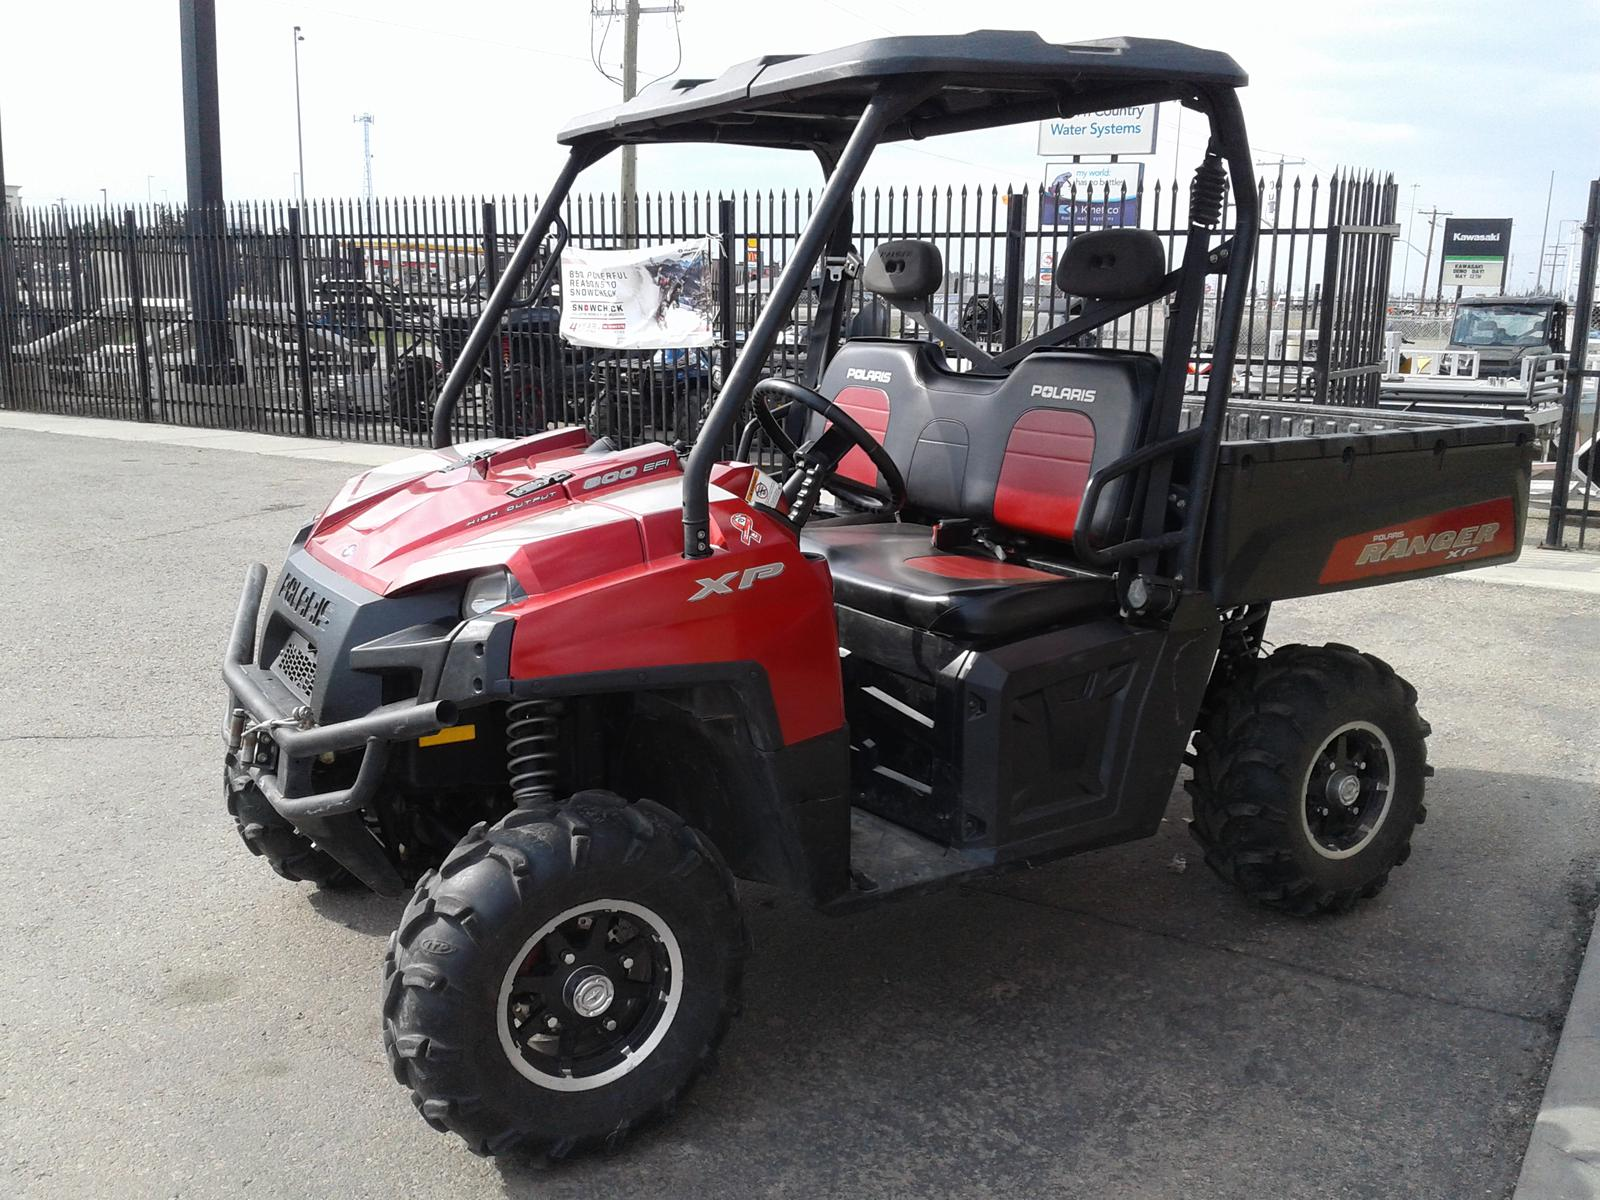 hight resolution of 2011 ranger xp 800 le polaris industries